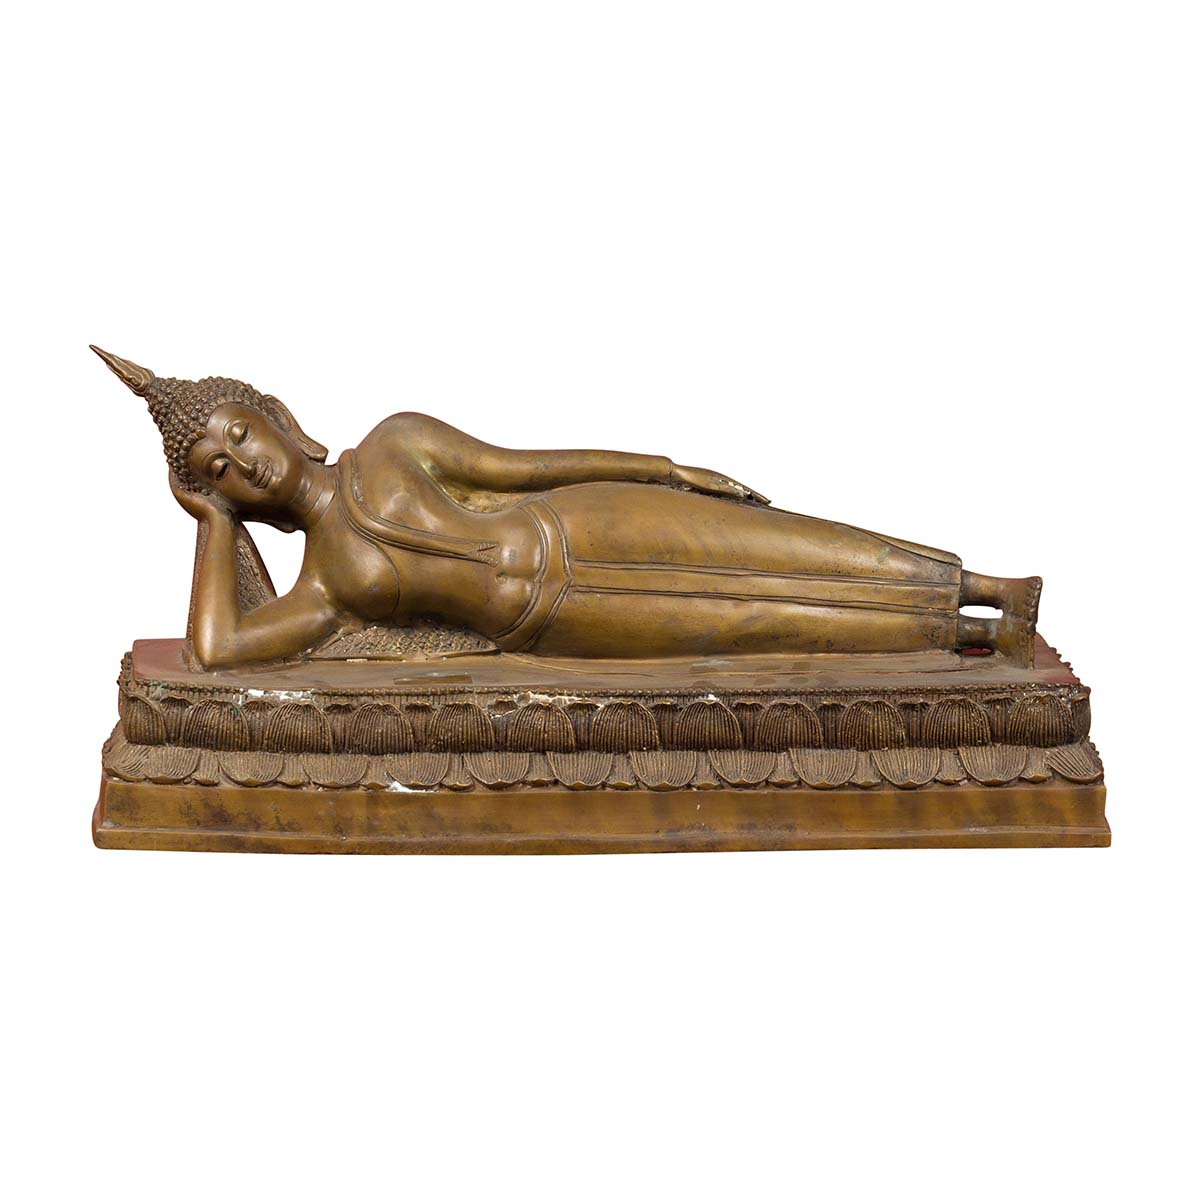 Vintage Thai Bronze Reclining Buddha Sculpture on Base with Lost Wax Technique